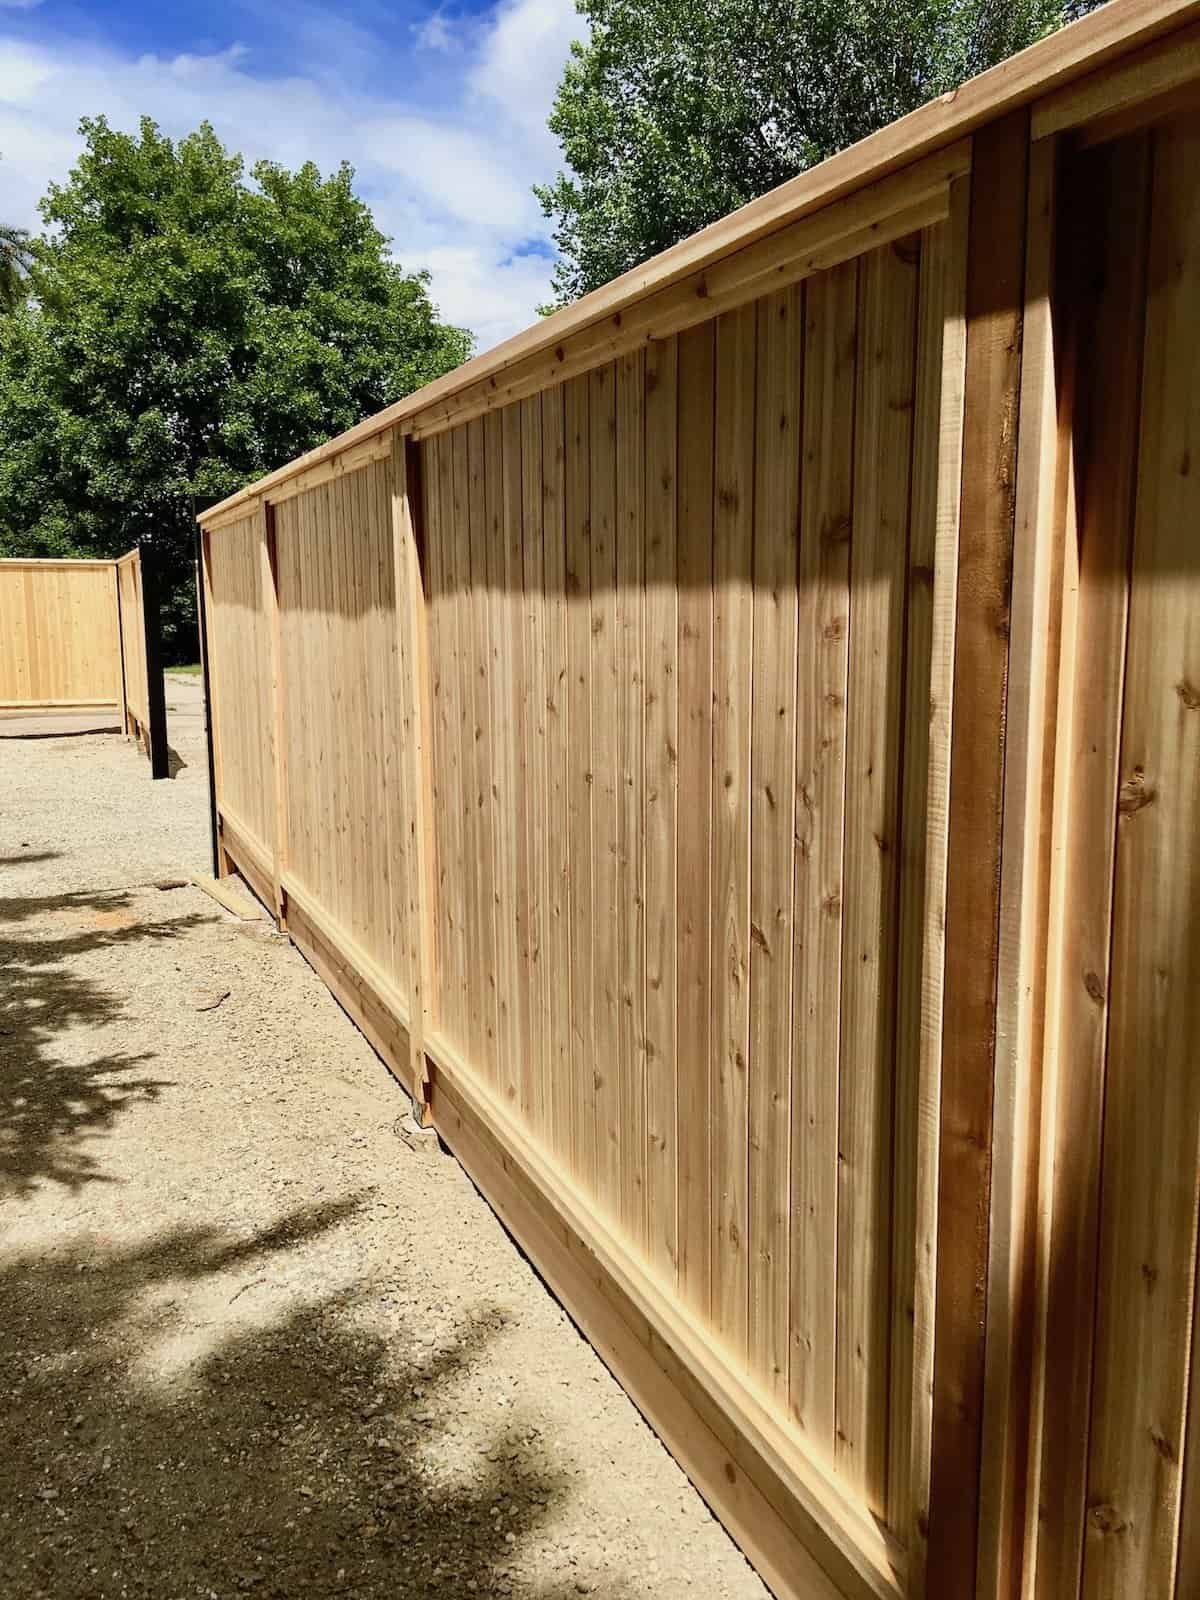 Backyard Fence Privacy Fence Using Wood Fence Panels To Create Privacy Fencing